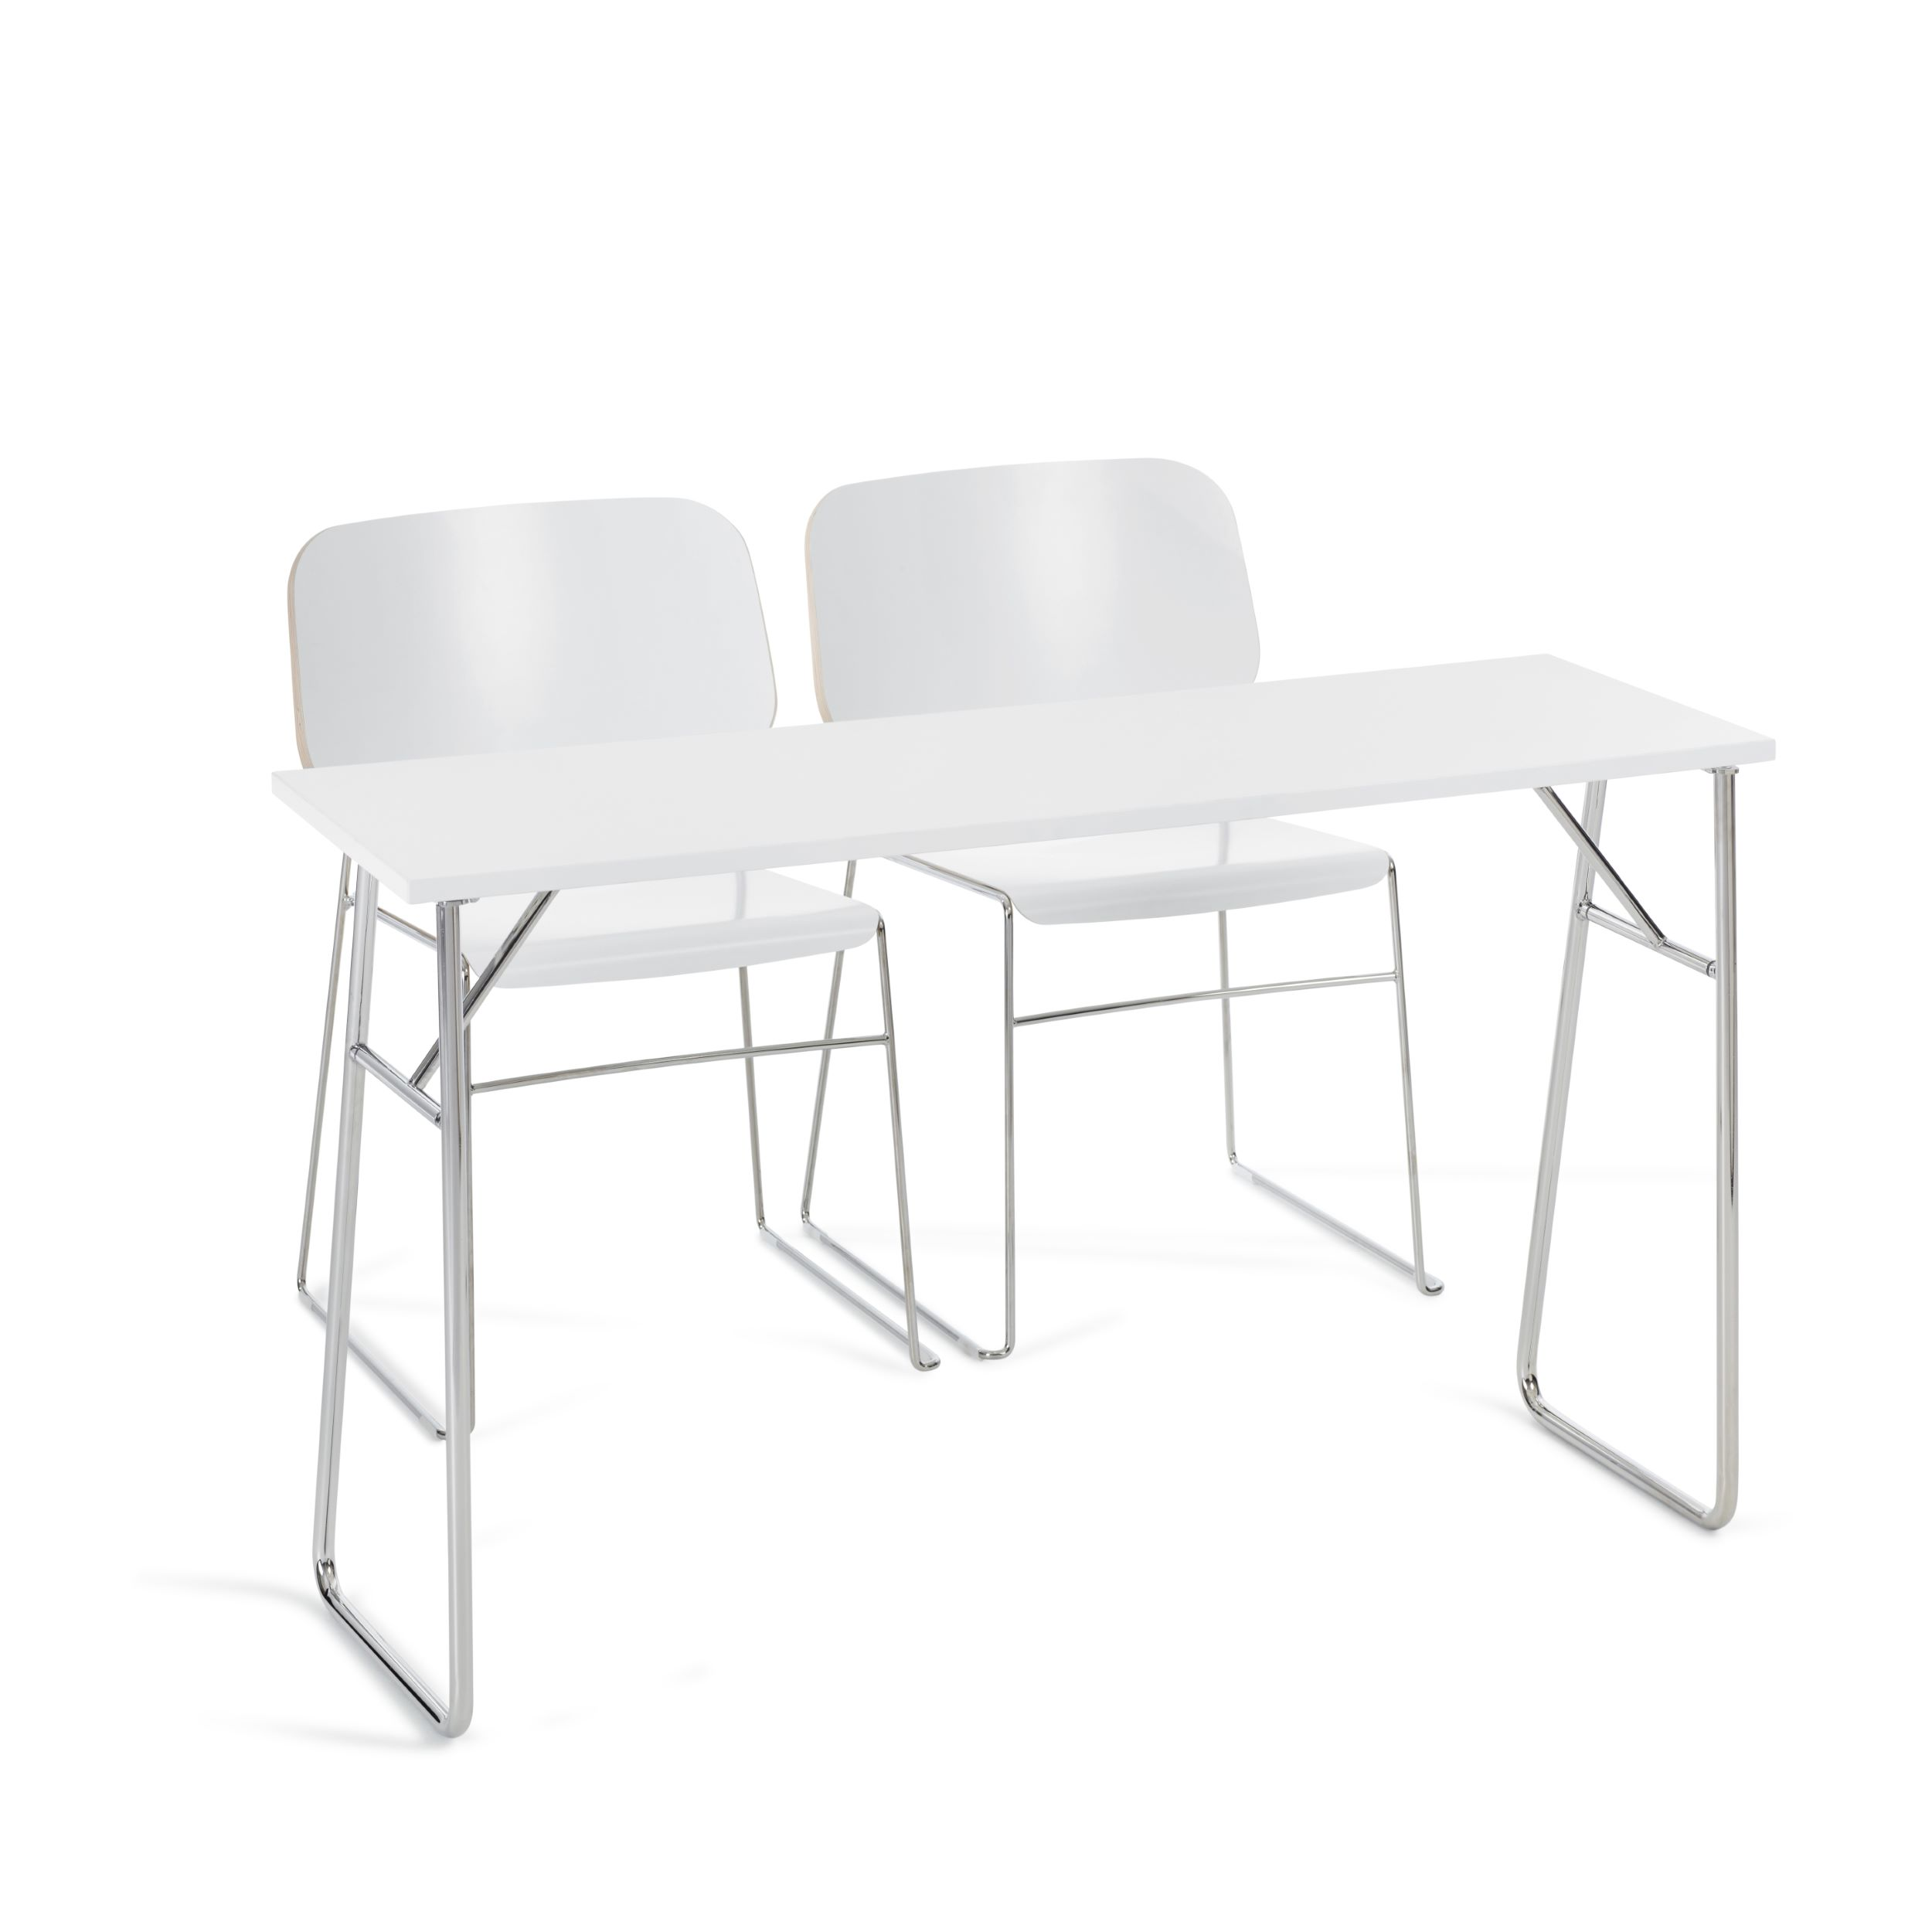 Lite Folding table